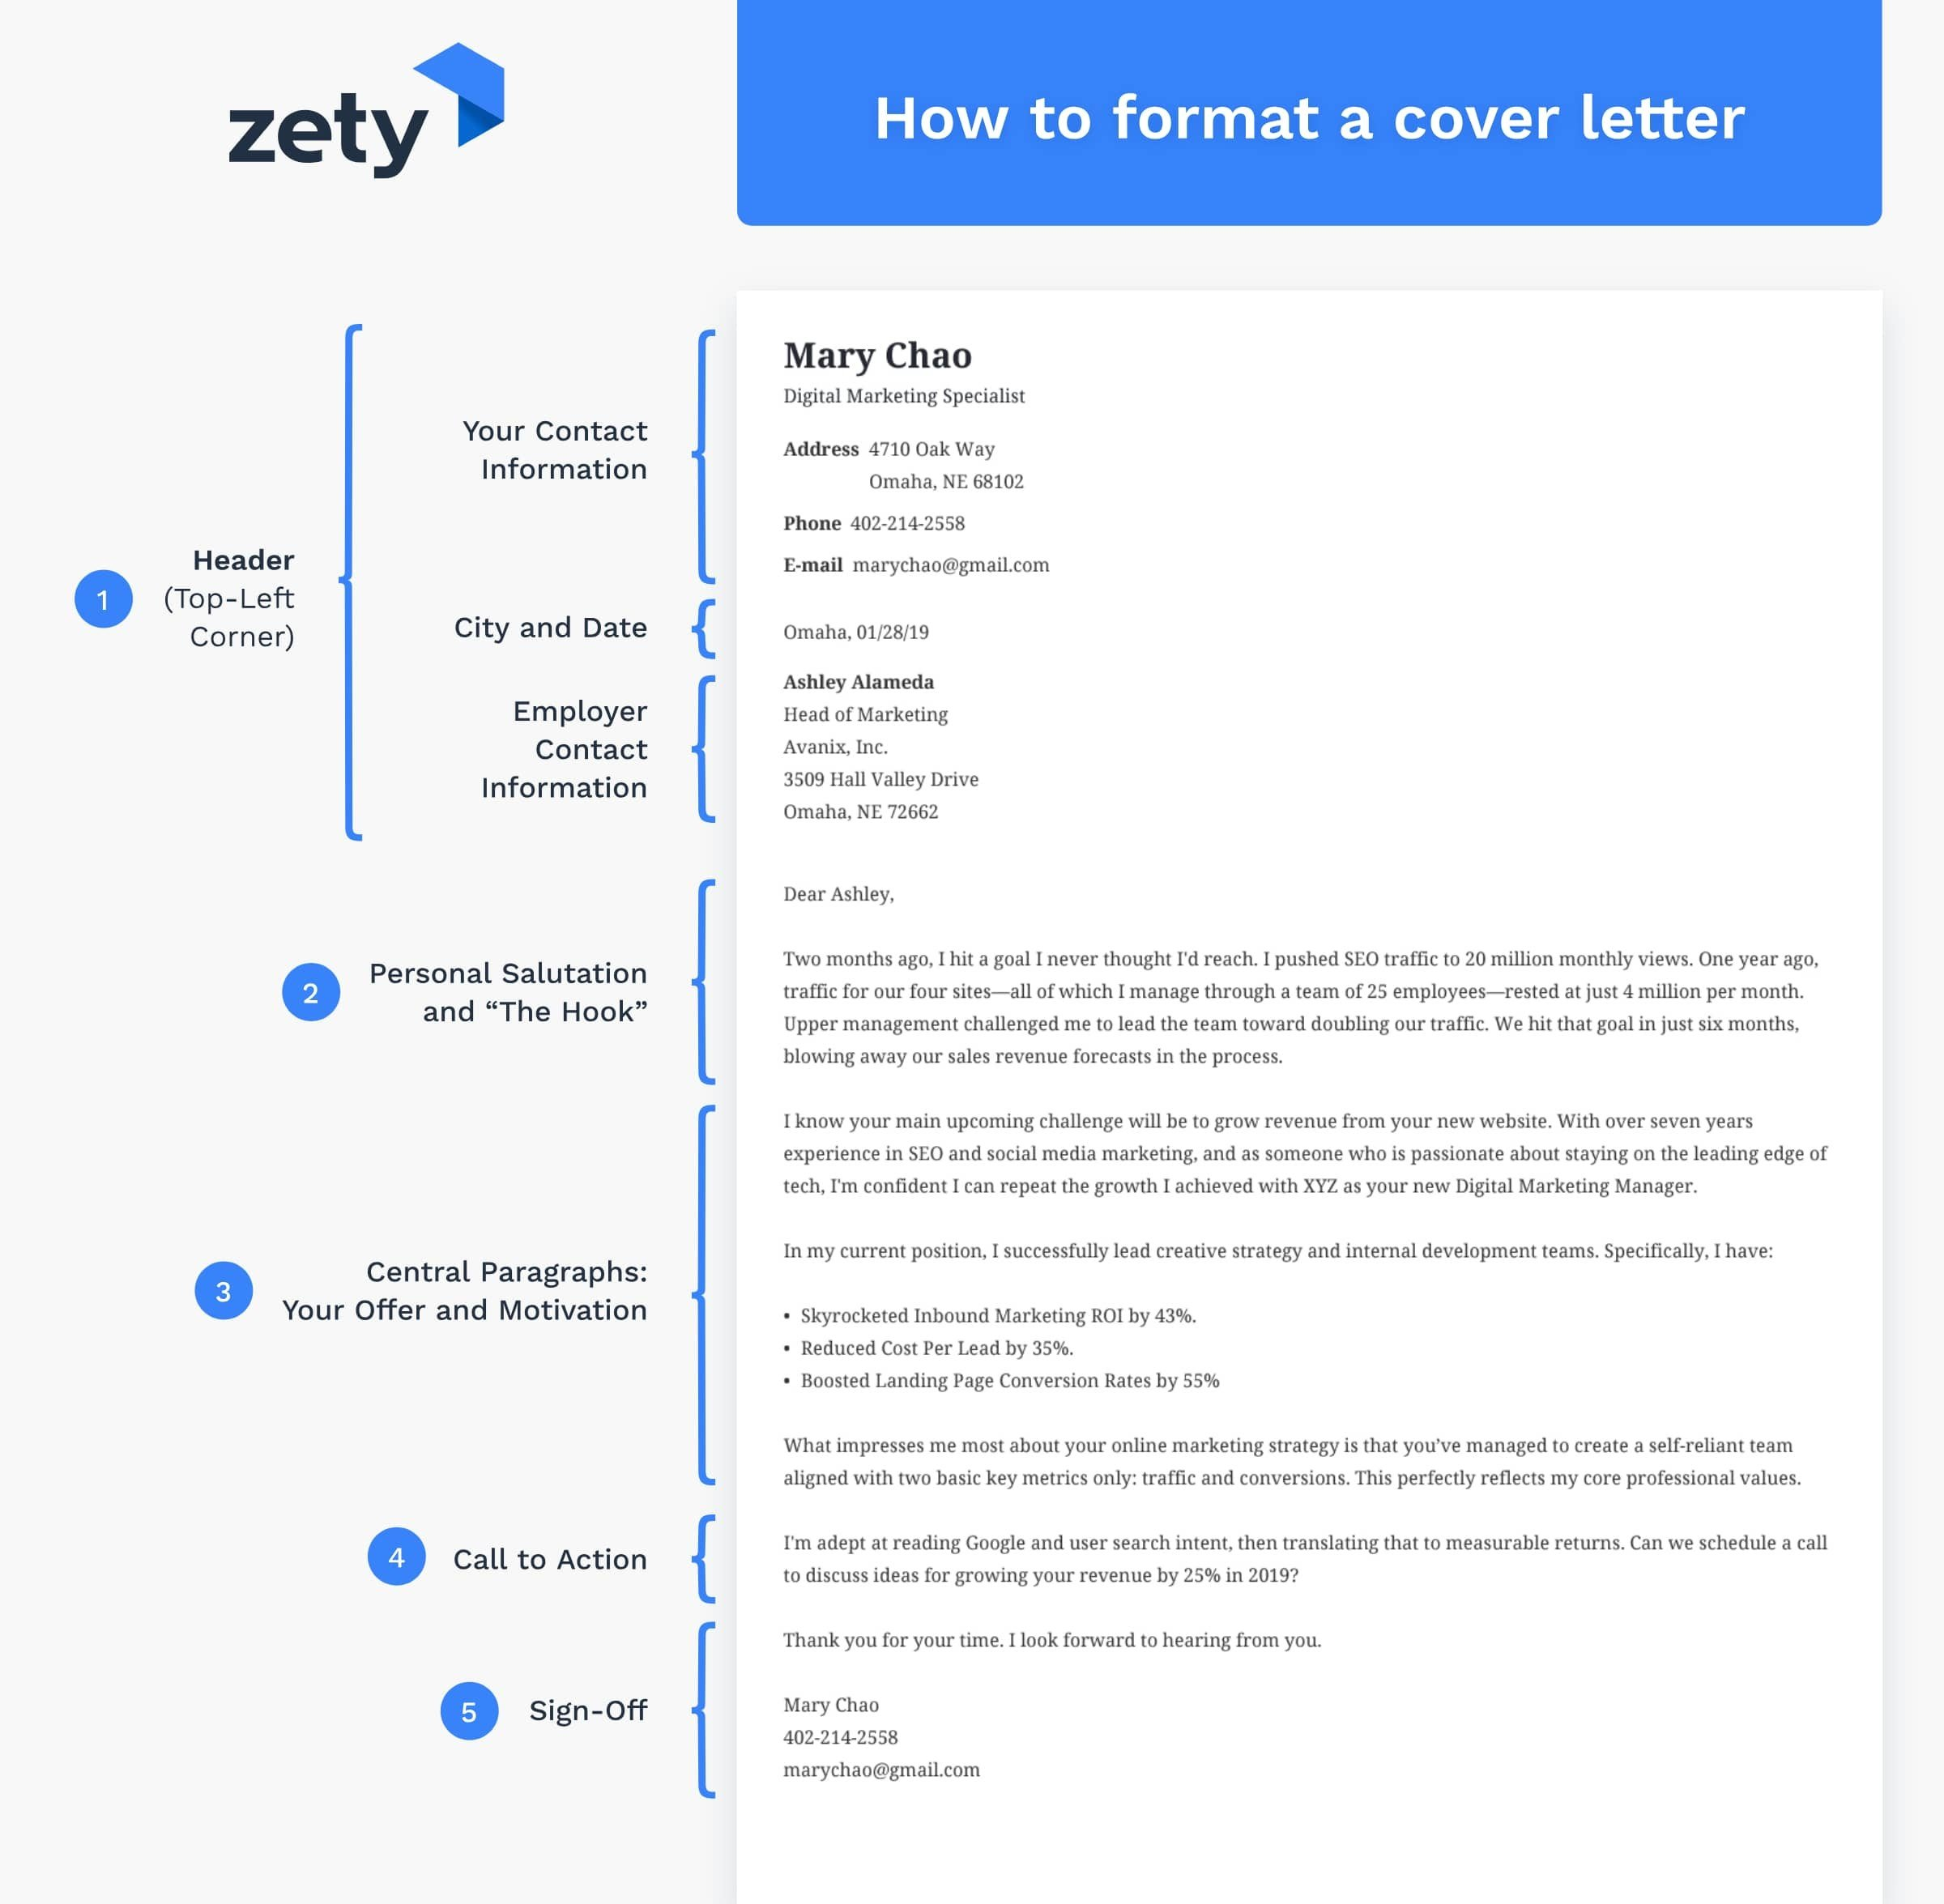 Cover Letter Format: Templates, Ready-to-Use Layouts, & 20+ Samples